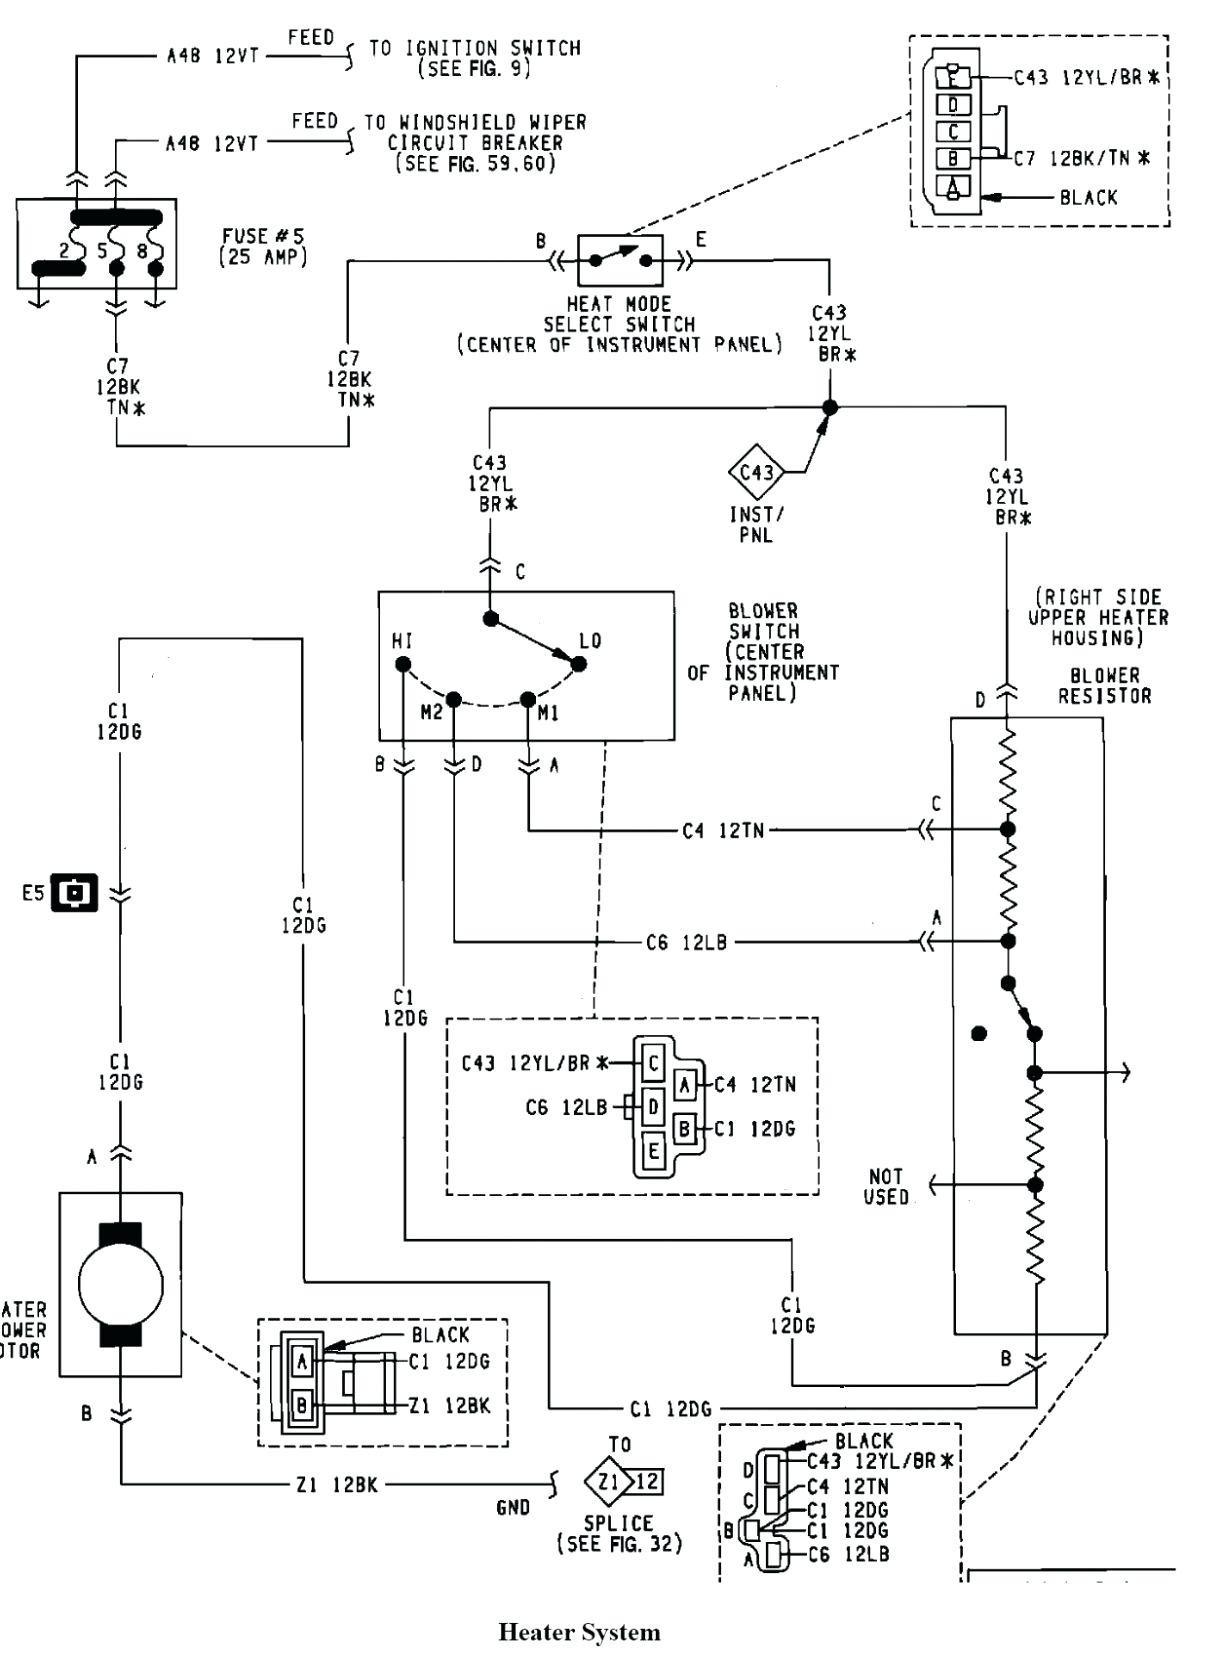 2000 jeep wrangler wiring harness diagram diagram base website harness  diagram - venndiagramexplanation.roundabike.it  diagram base website full edition - roundabike